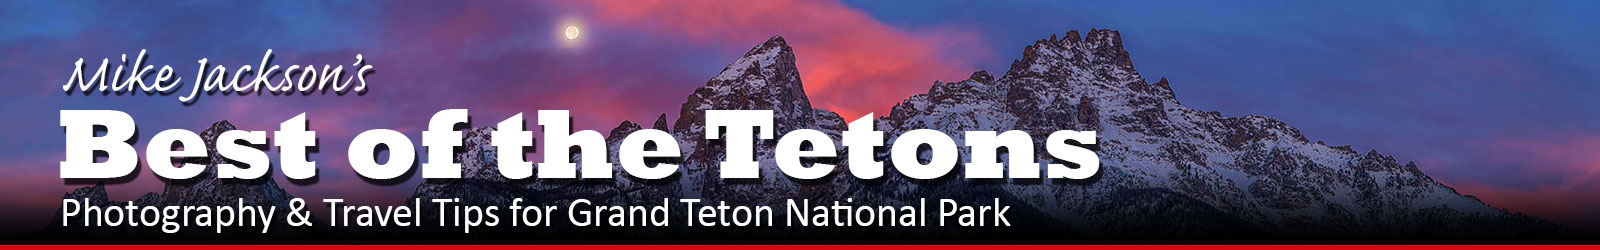 Best of the Tetons, Great Photography Tours In Jackson, WY